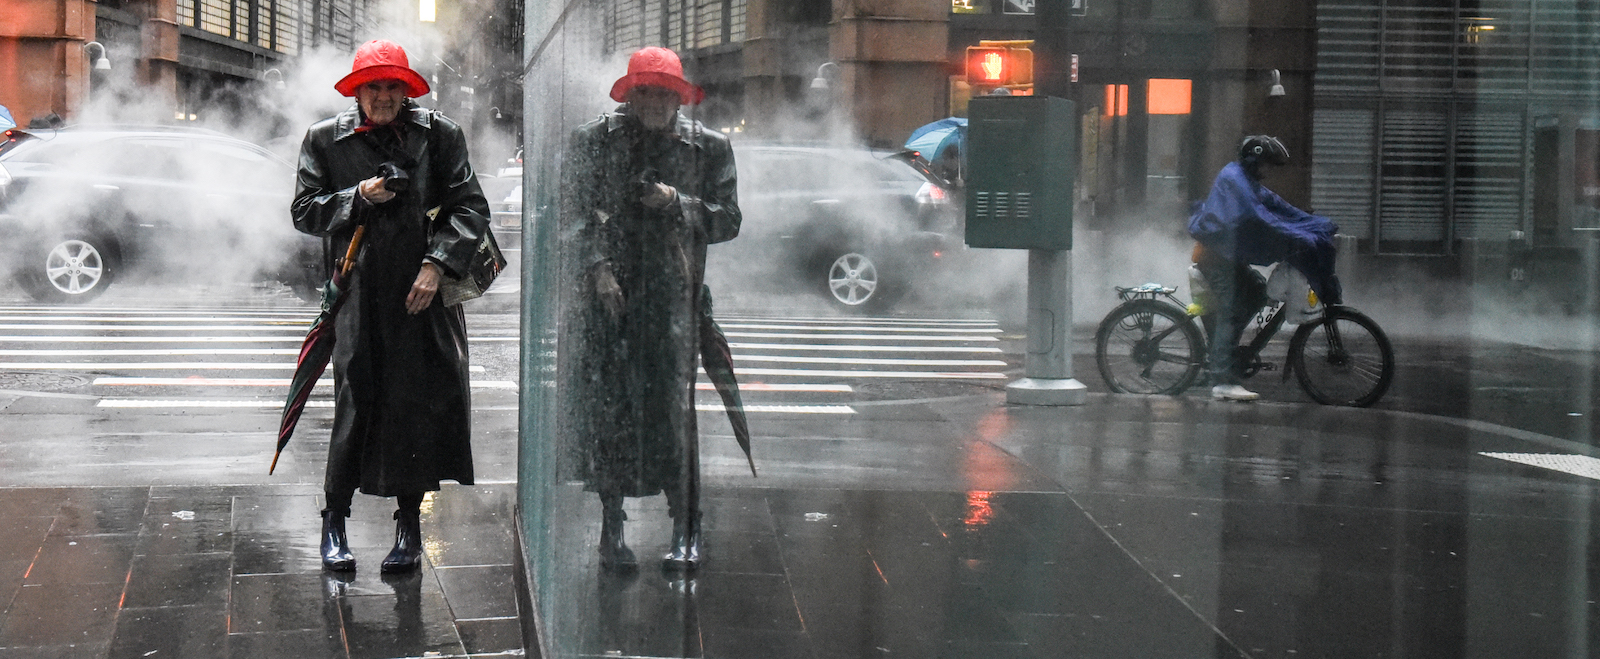 The upcoming midterms forecasts a storm in the US (Photo: Stephanie Keith/Getty)